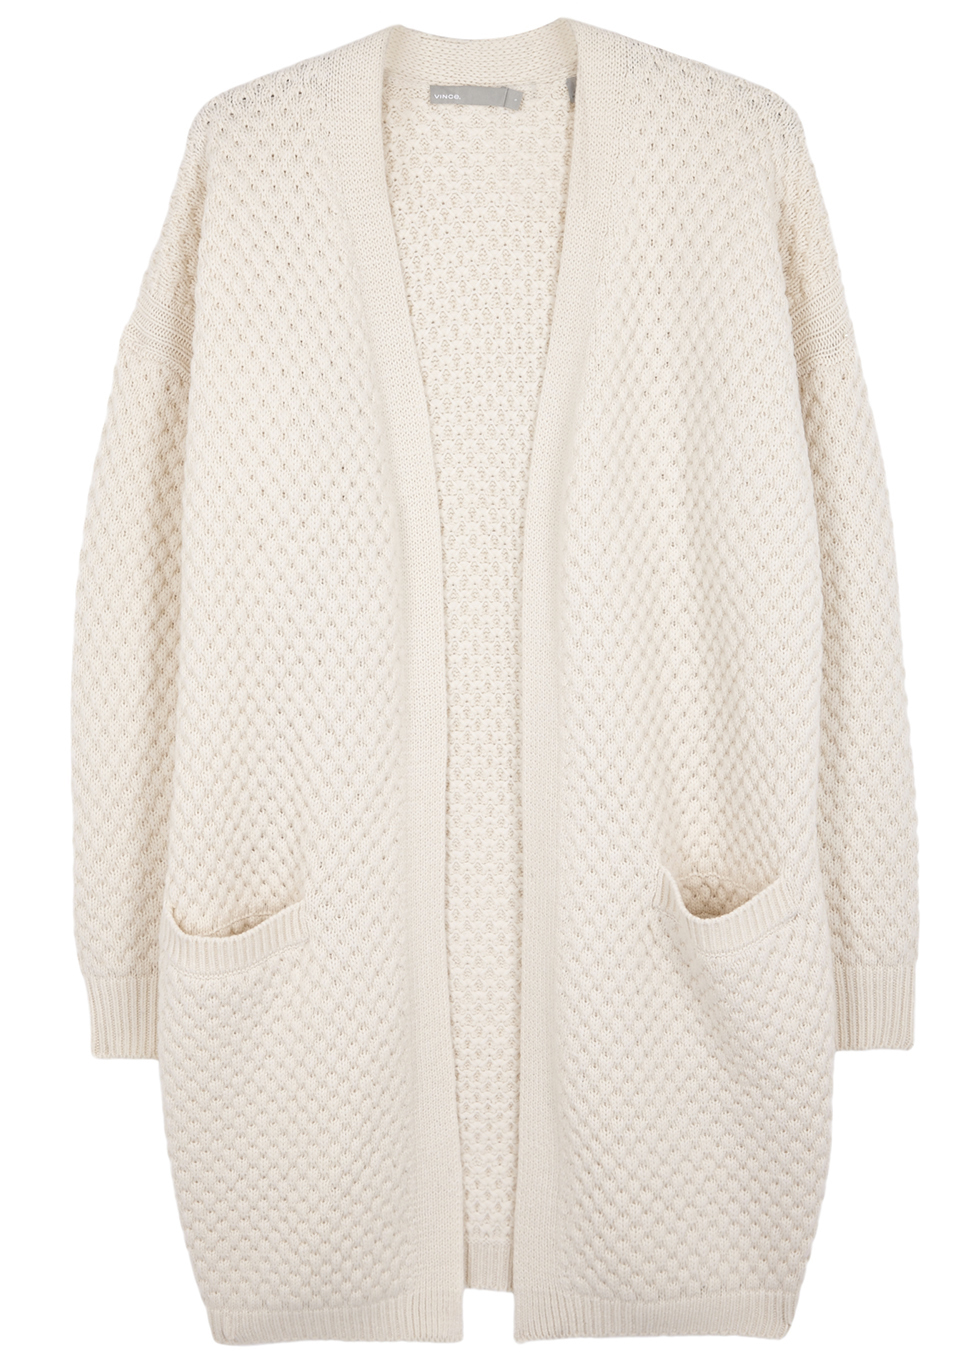 Ivory Waffle Knit Wool Blend Cardigan - pattern: plain; length: below the bottom; neckline: collarless open; style: open front; predominant colour: ivory/cream; occasions: casual; fibres: wool - mix; fit: loose; sleeve length: long sleeve; sleeve style: standard; texture group: knits/crochet; pattern type: knitted - other; season: a/w 2016